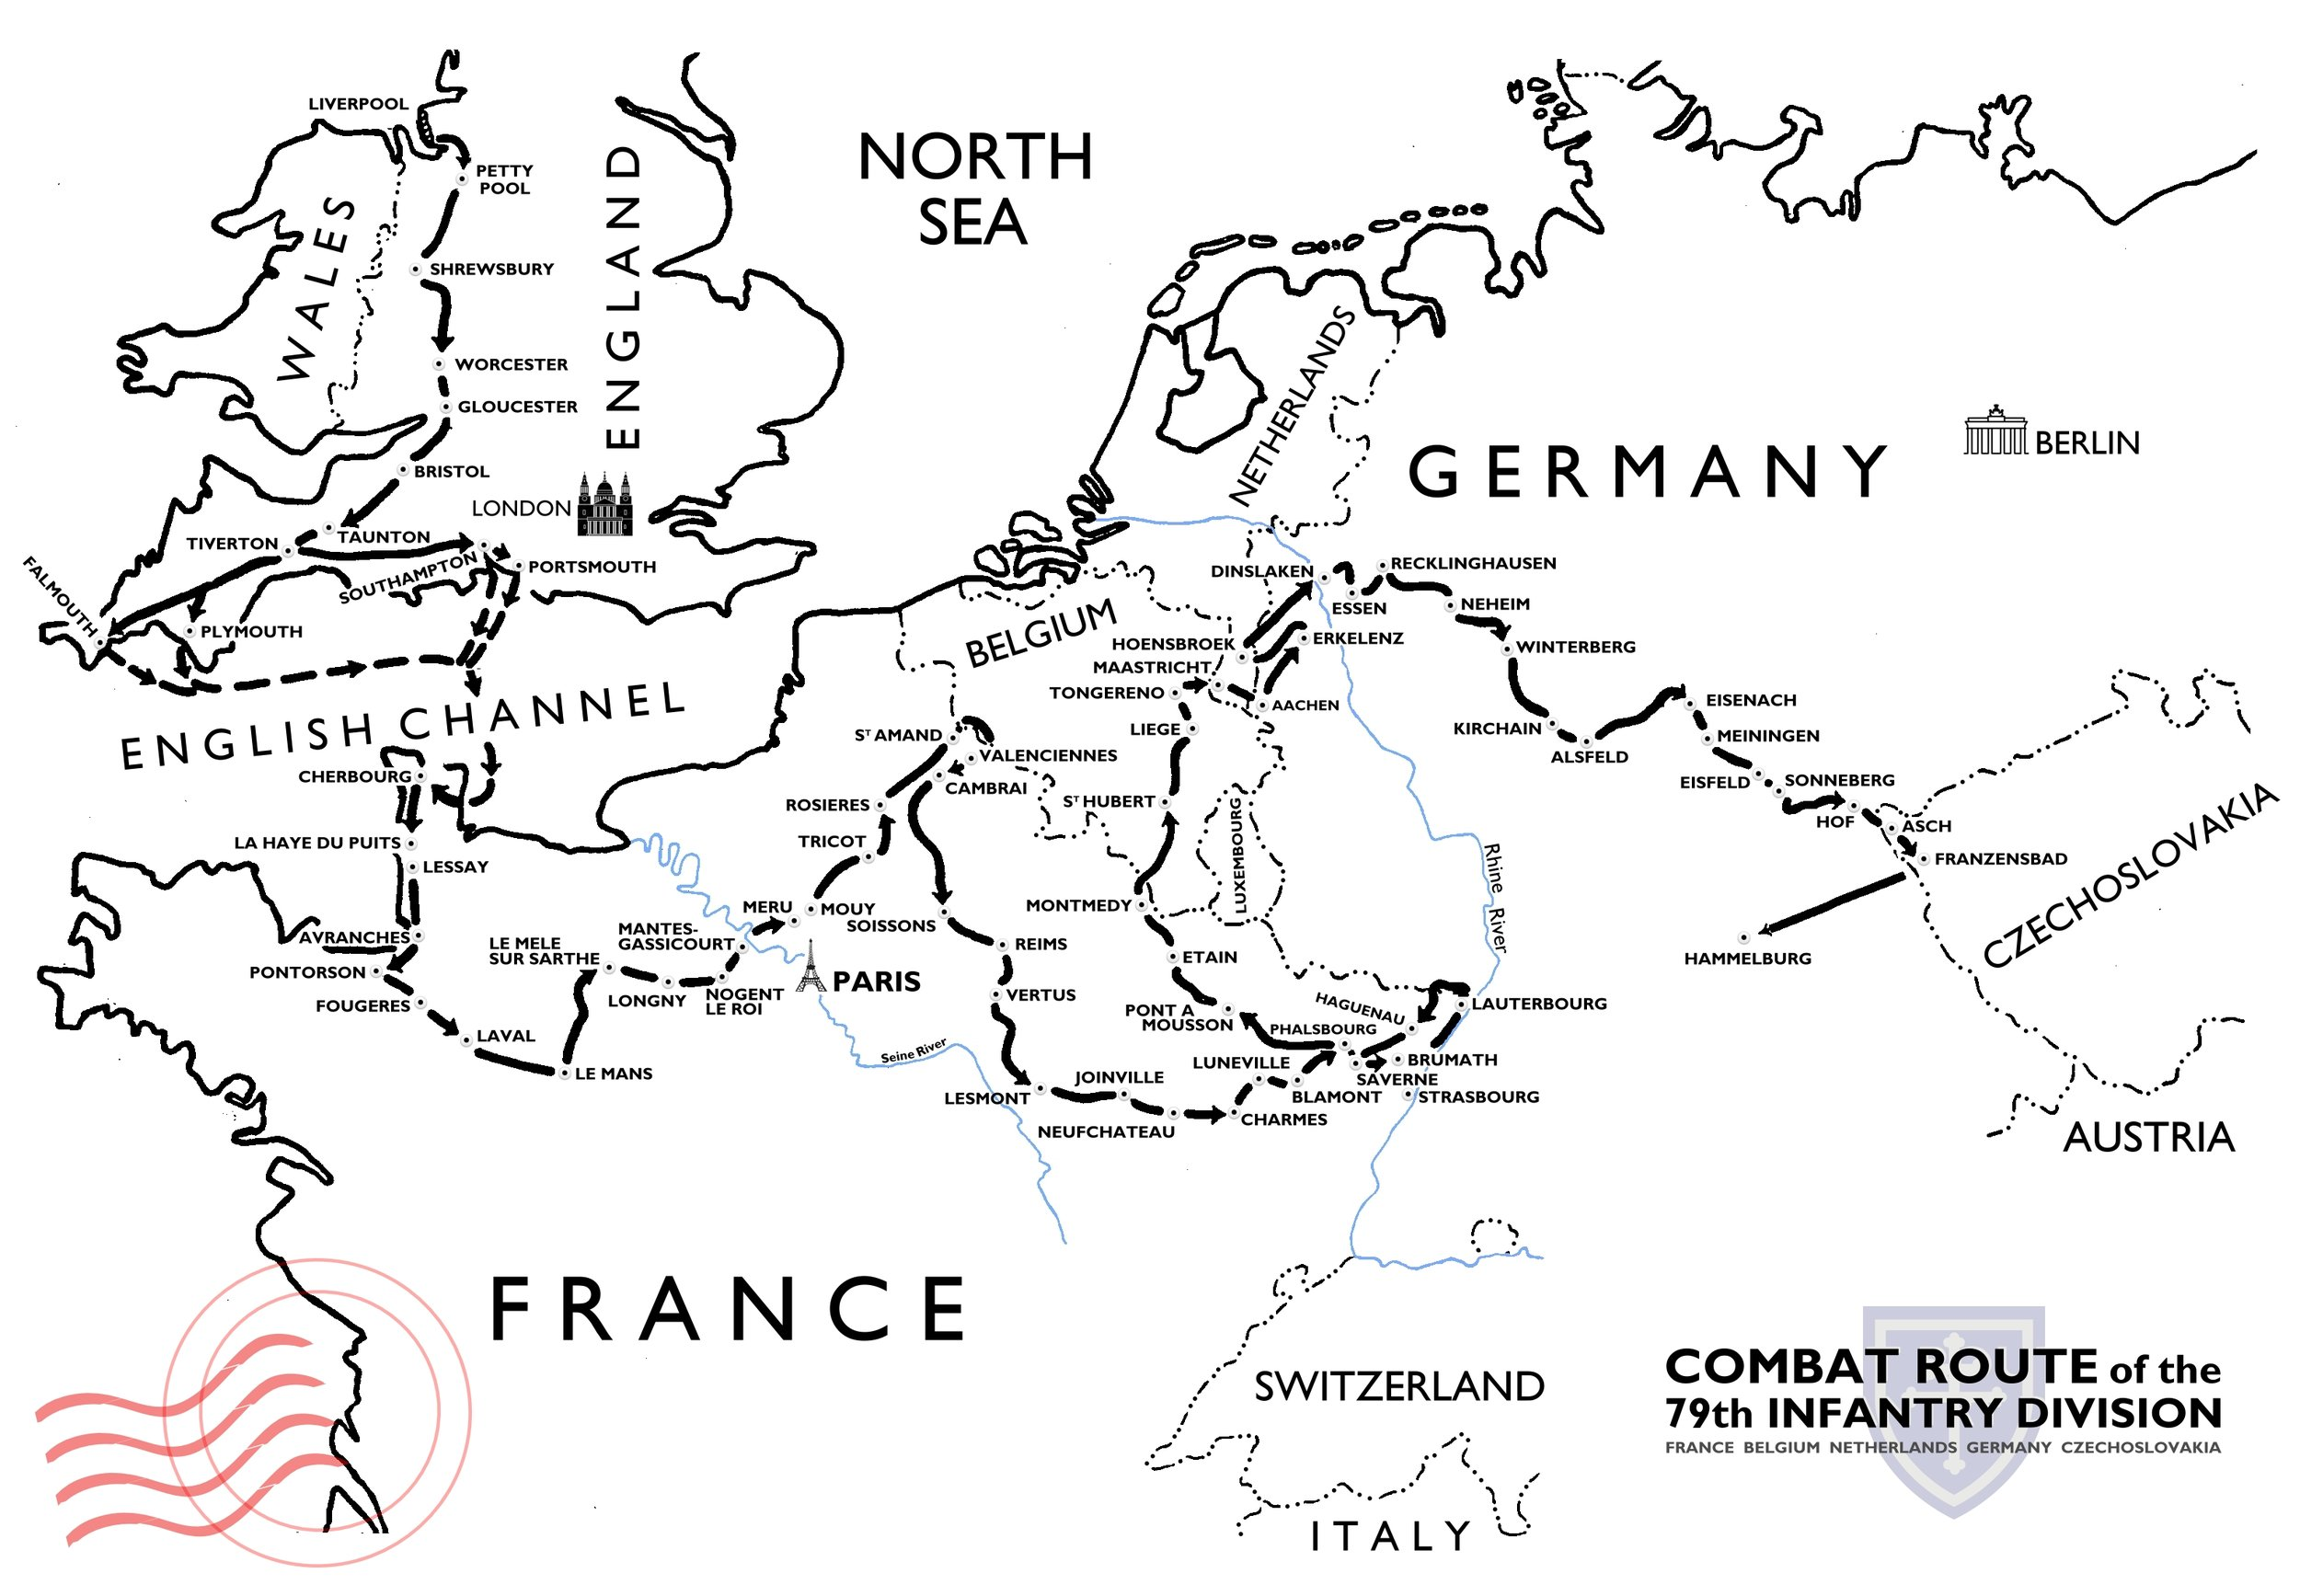 The Route - See a detailed map of the towns and cities we plan to go through. We won't hit every place, but will follow their general path, making sure to visit notable battlefields and other areas the soldiers themselves have talked about.